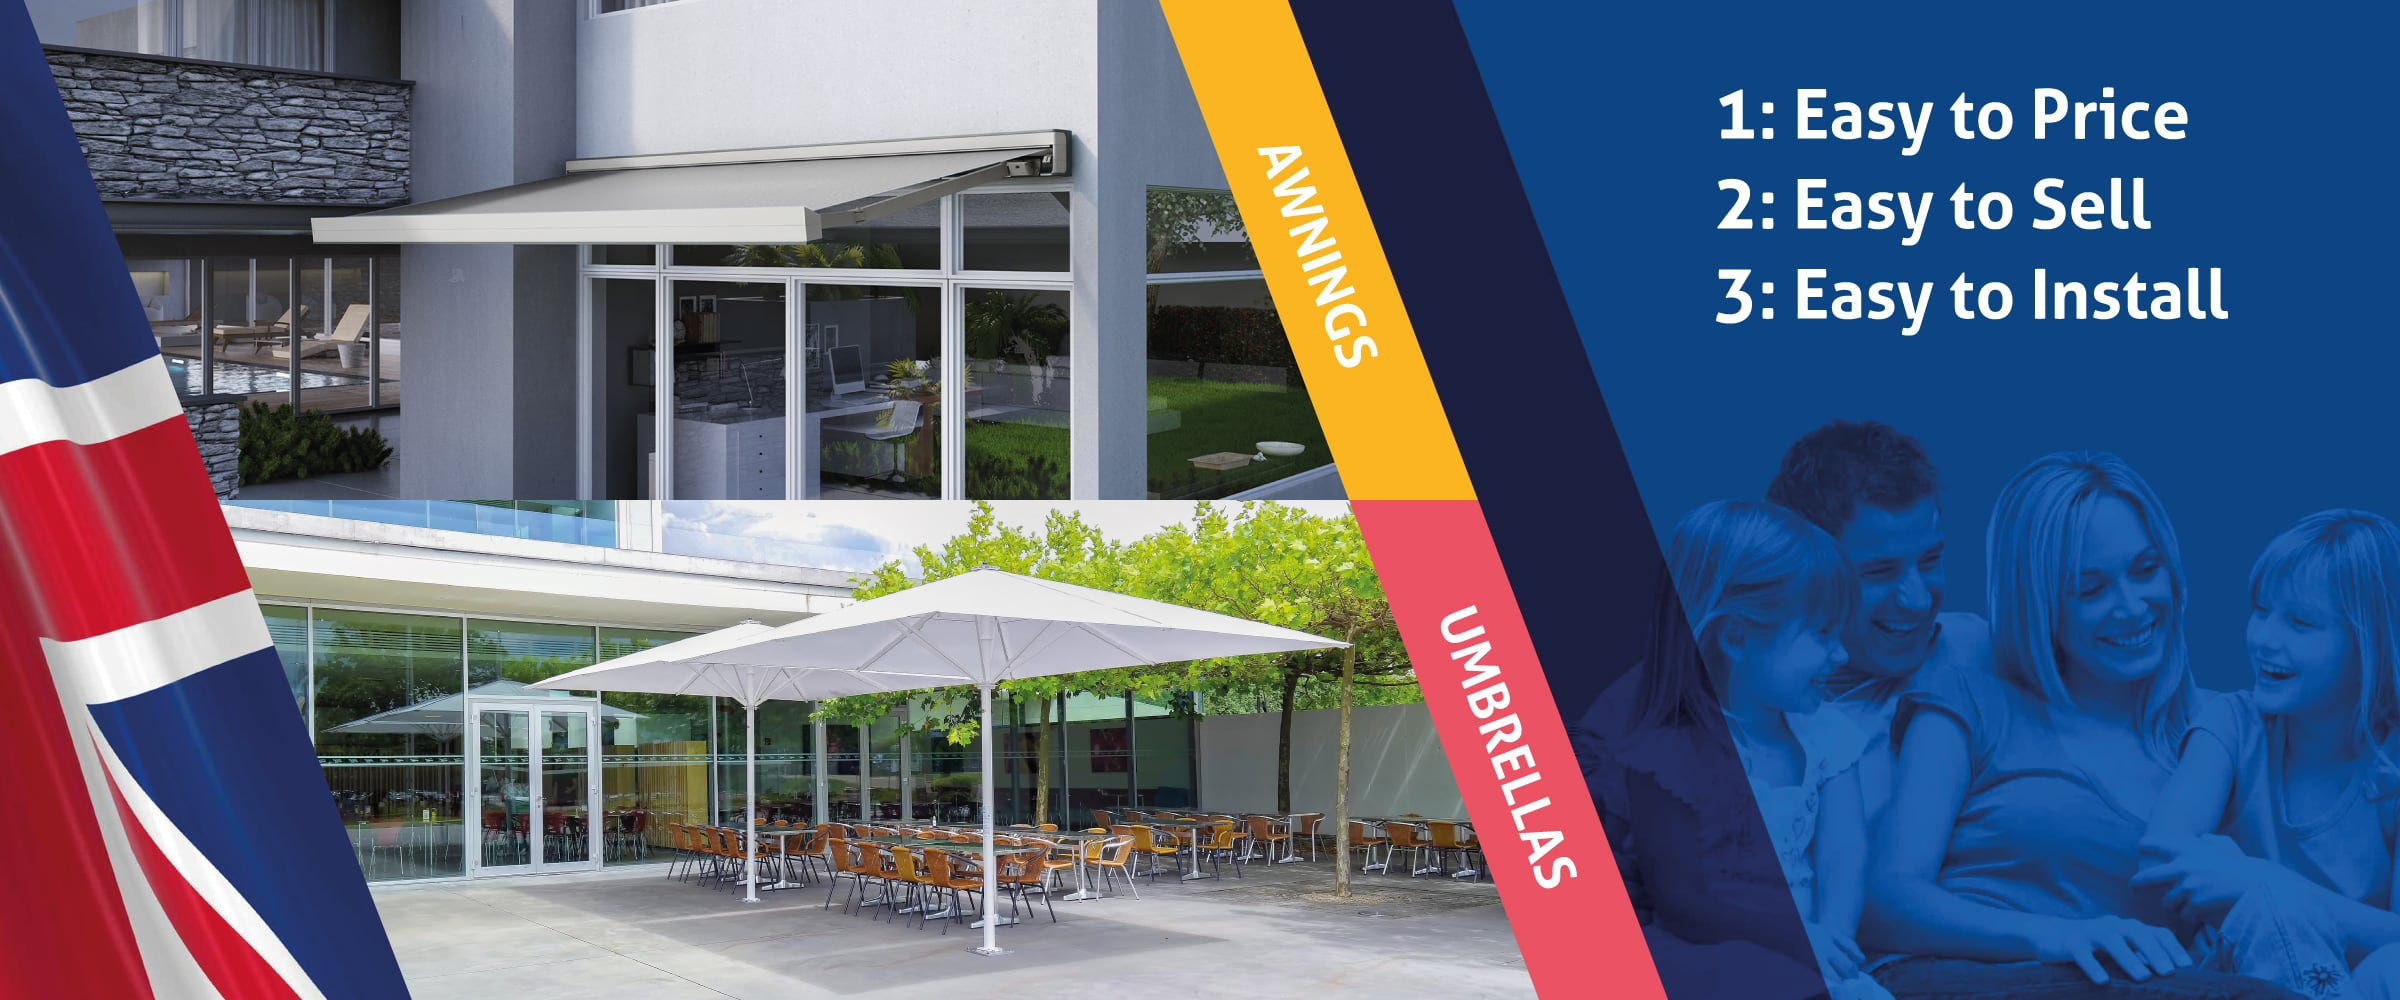 Awnings Umbrella Kits